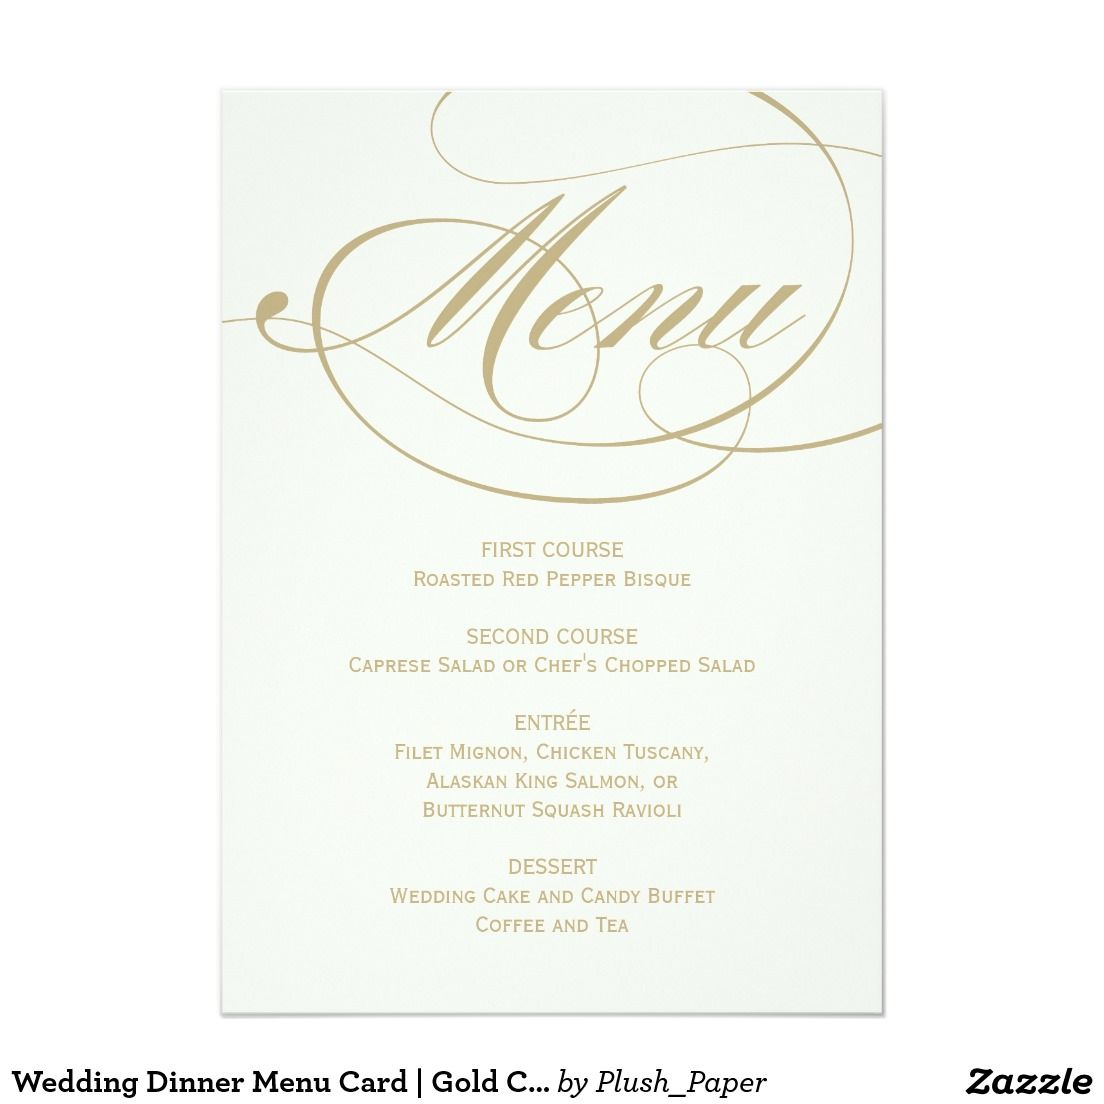 Wedding dinner menu card gold calligraphy design gold wedding discover amazing wedding menu cards with zazzle invitations greeting cards photo cards in thousands of designs themes stopboris Choice Image